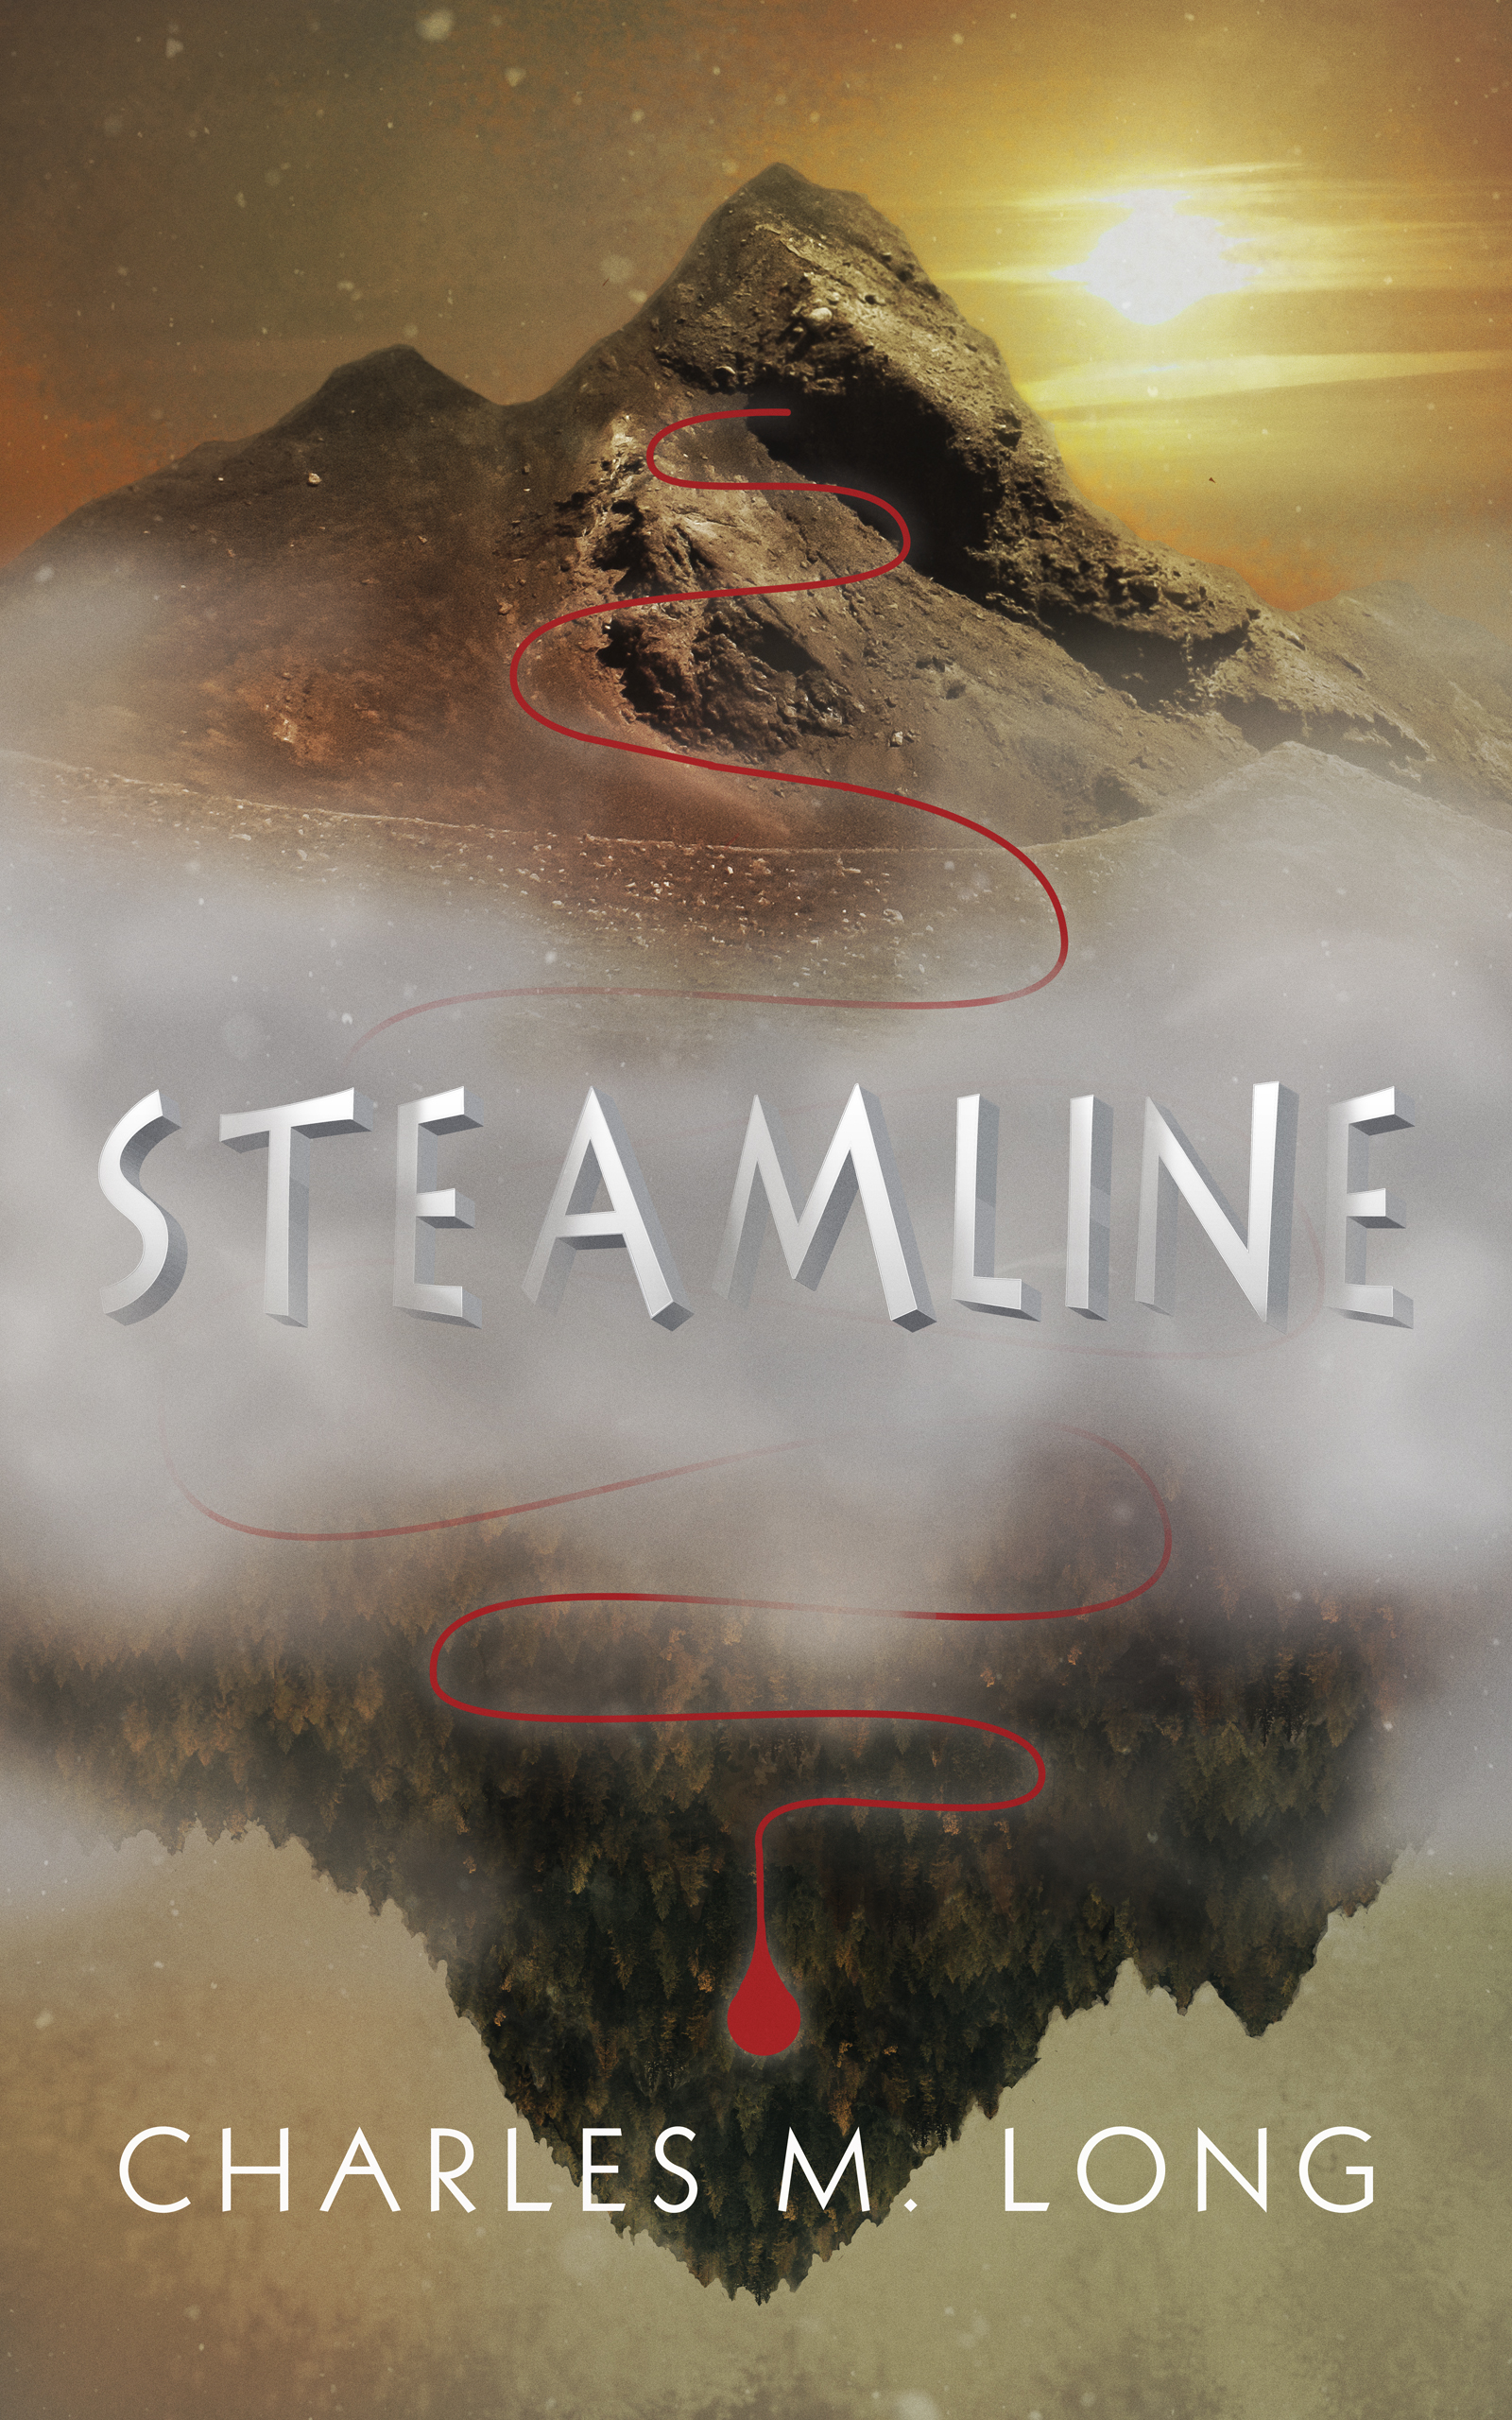 Steamline by Charles M. Long